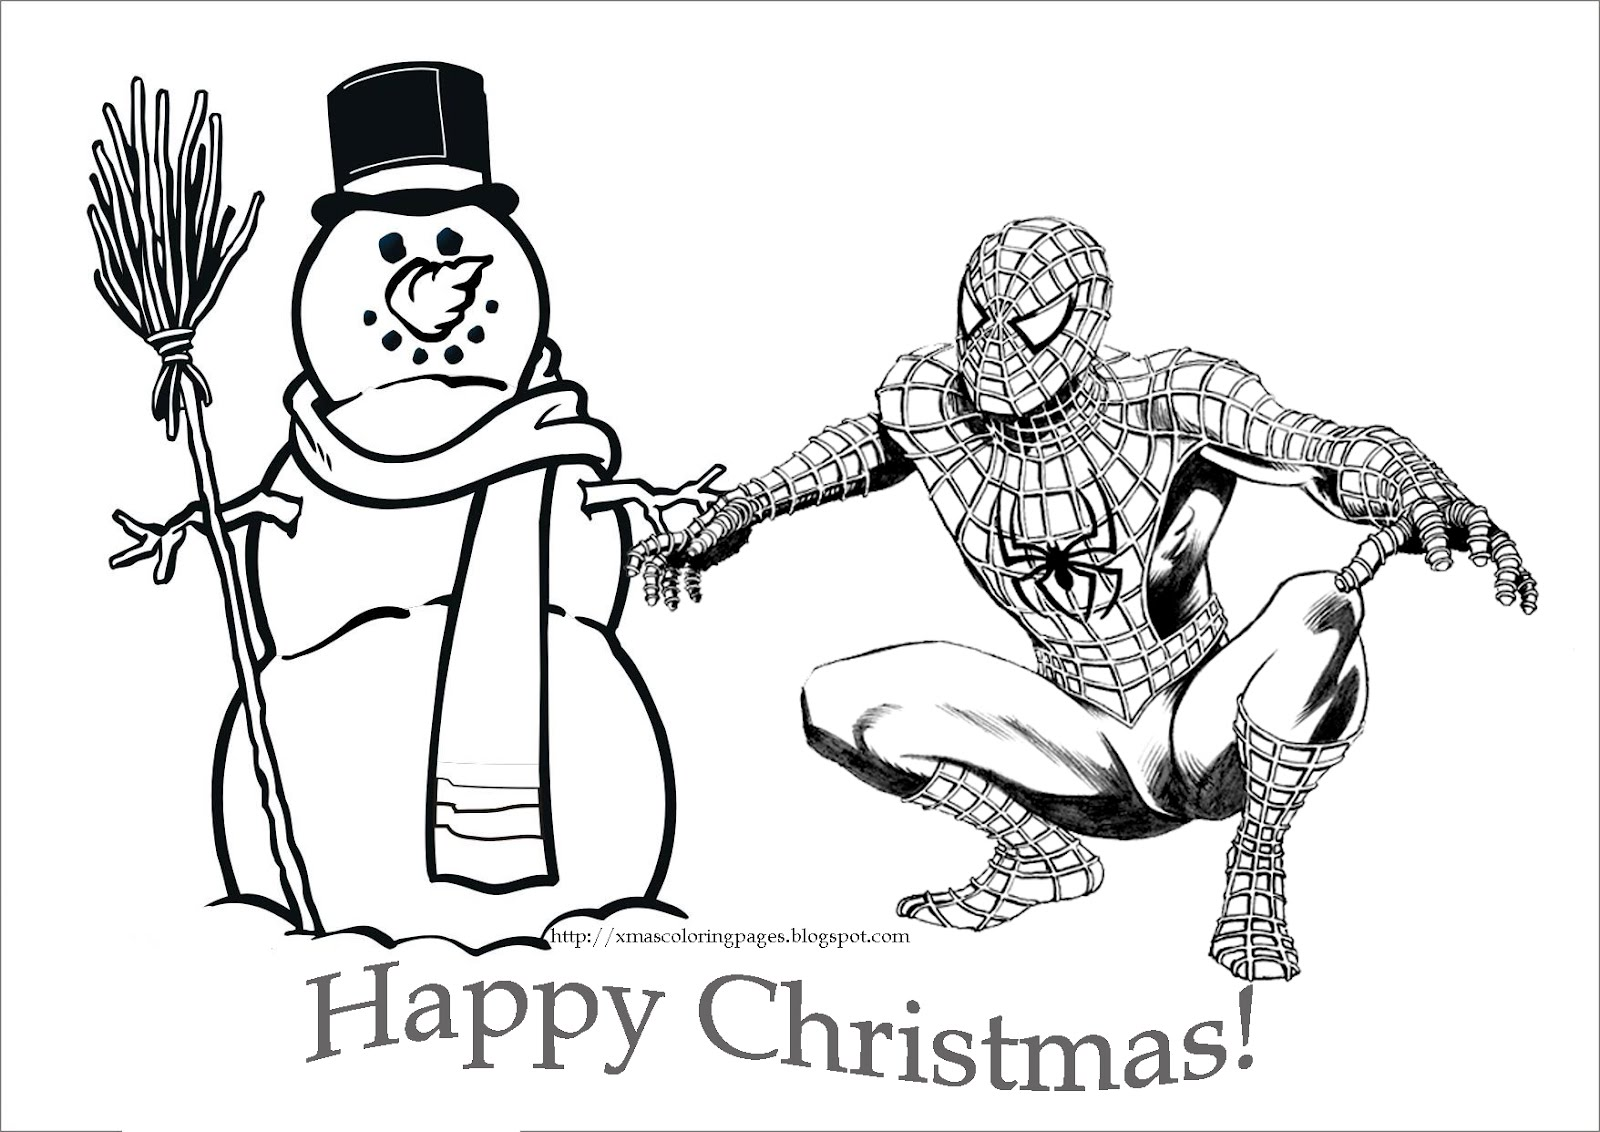 72 spiderman pictures to print and color. Spiderman Coloring Spiderman Christmas Coloring Page